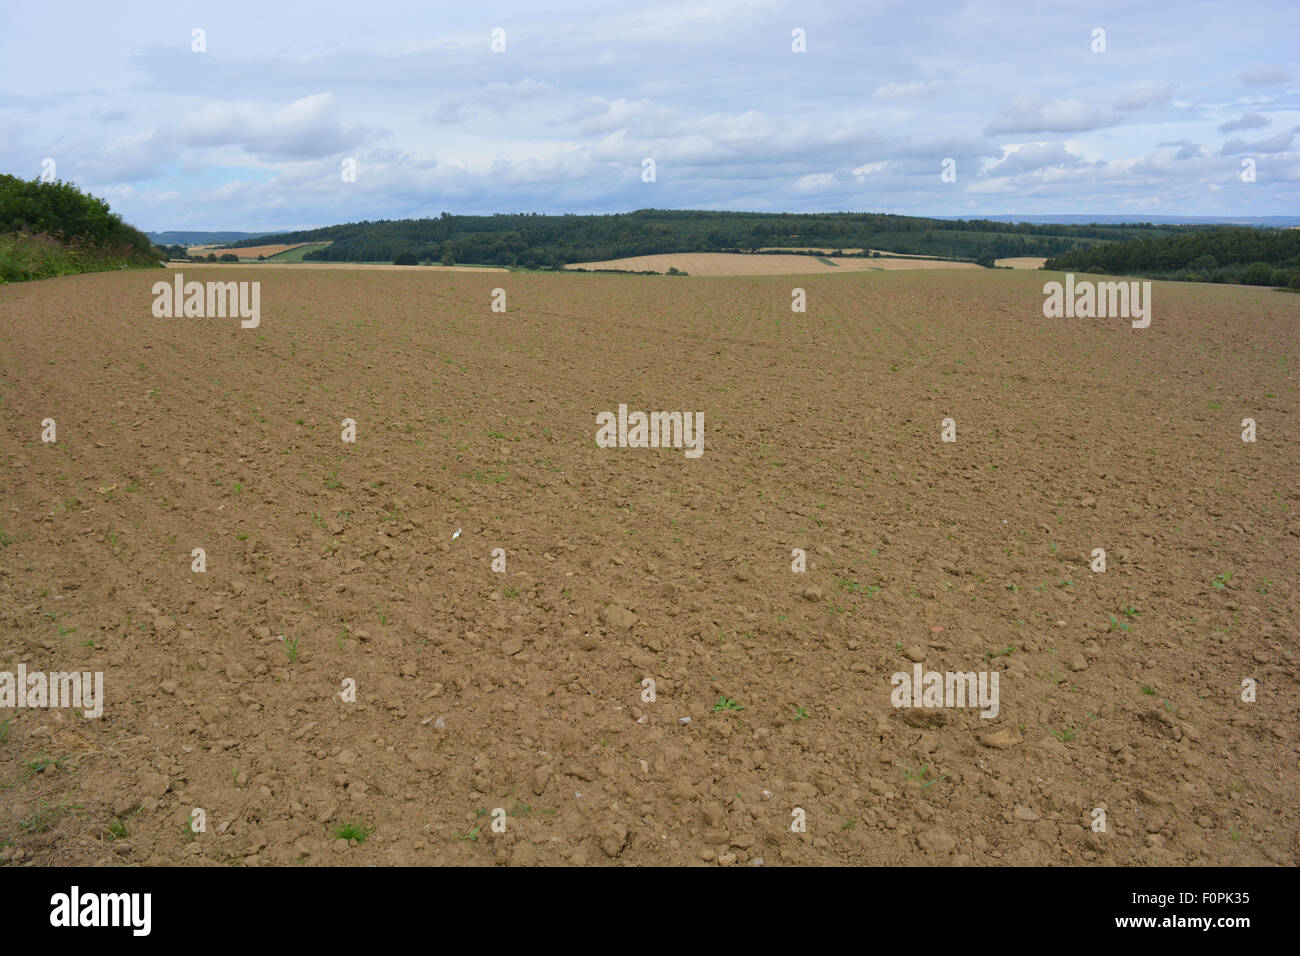 Ploughed field in the Howardian Hills, an Area of Outstanding Natural Beauty, near Terrington, North Yorkshire, - Stock Image